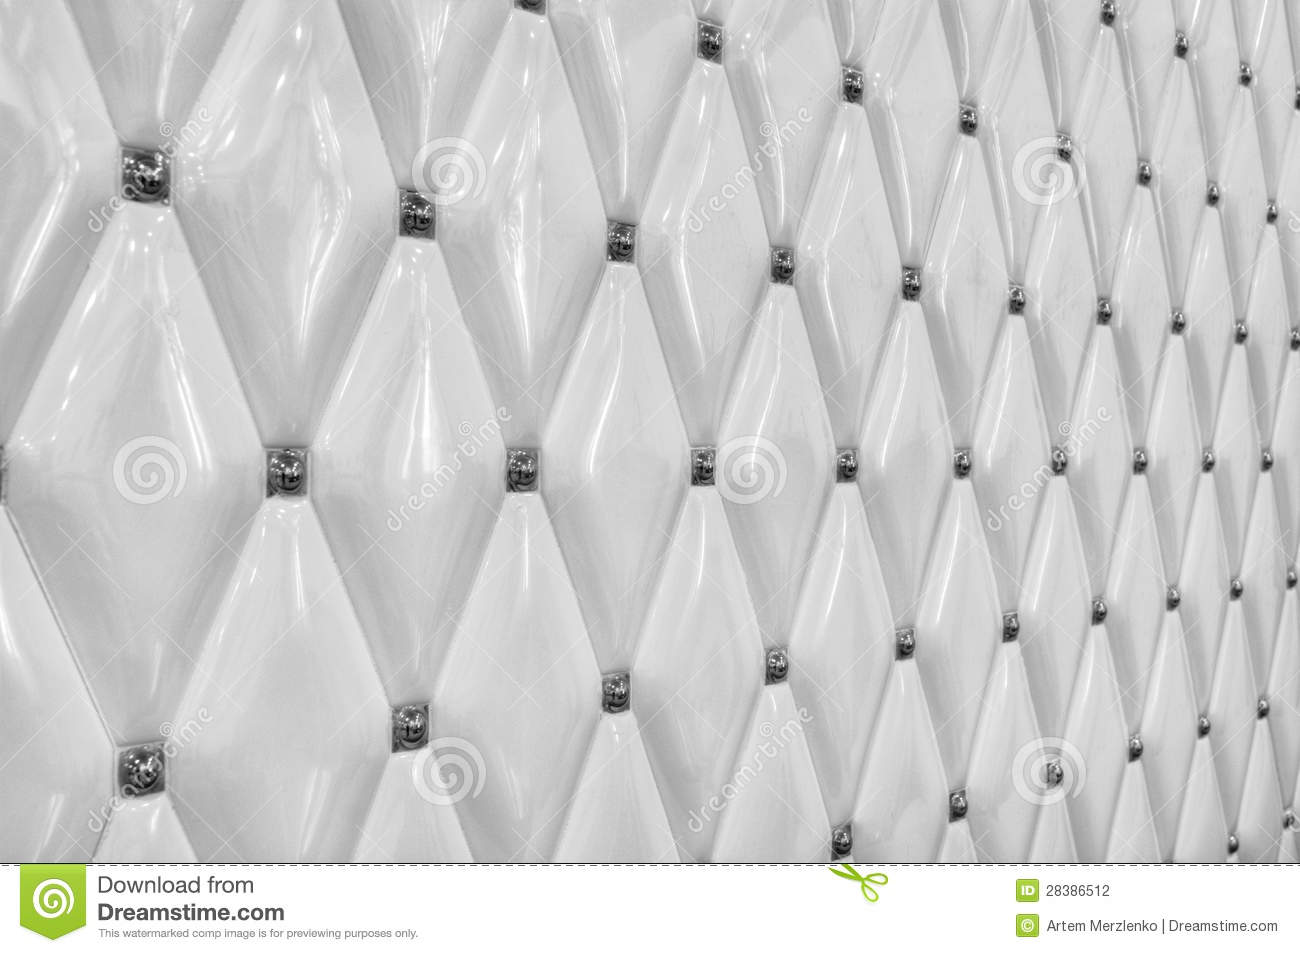 Ceramic tile wall texture stock photo image of stone 28386512 ceramic tile wall texture dailygadgetfo Choice Image